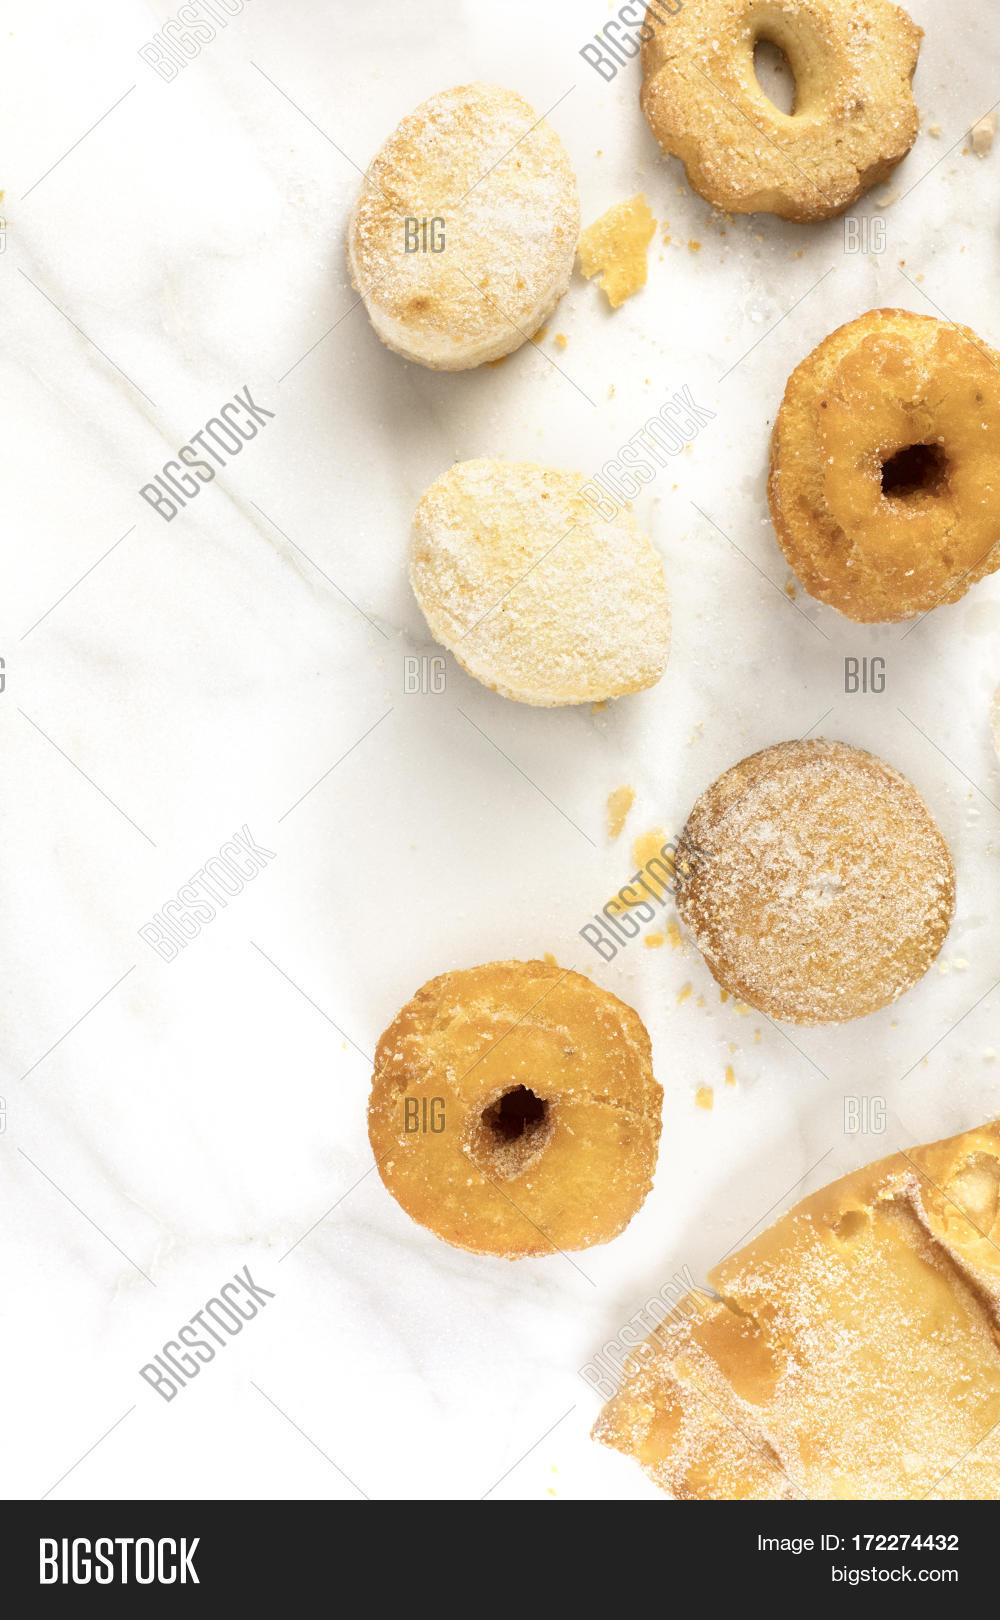 background,biscuits,butter,candid,card,christmas,classic,cookie,copy,copyspace,crumbs,dessert,drink,eat,festive,food,greetings,holiday,madrid,mantecados,marble,new,overhead,pastry,photo,place,polvorones,post,postcard,rosquillas,season,shot,space,spain,spanish,sugar,sweet,table,tasty,tea,text,texture,top,traditional,travel,typical,view,winter,year